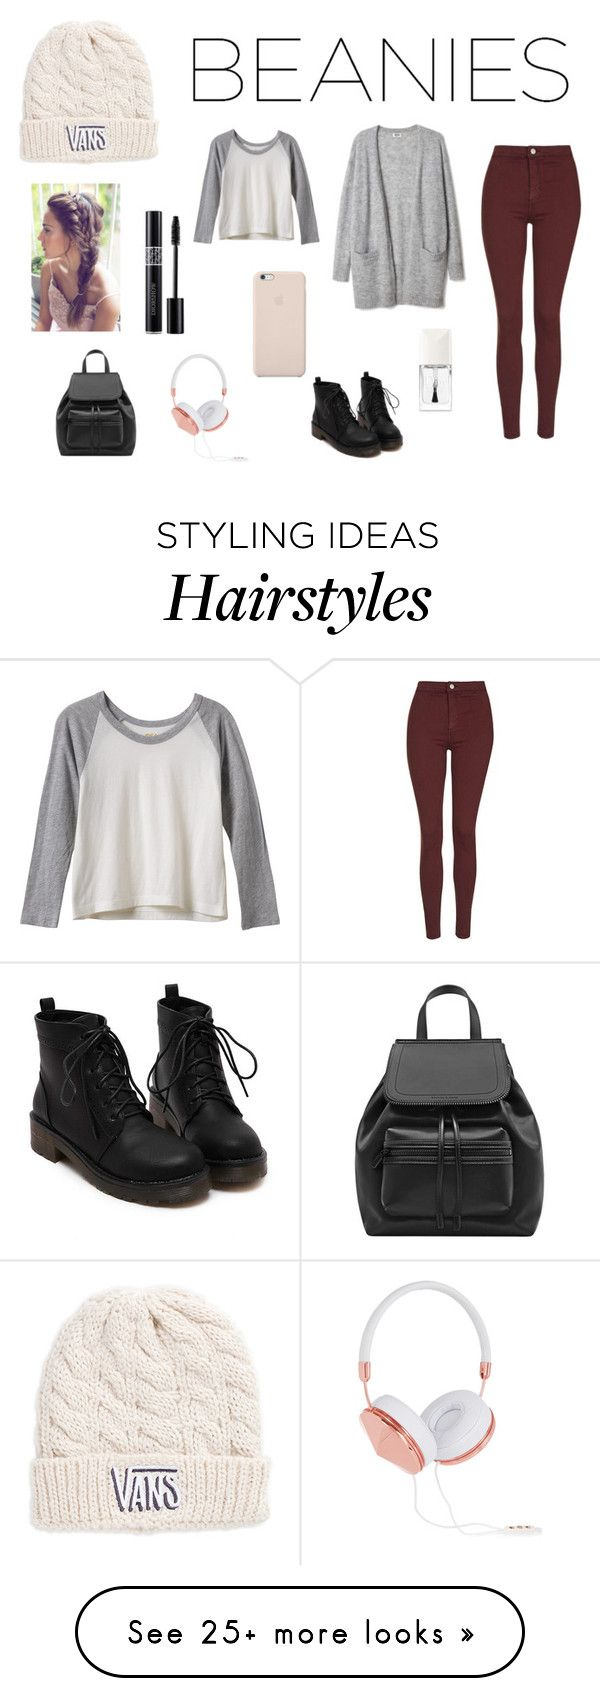 """""""Cute outfit for bad hair days!"""" by jenny-woo on Polyvore featuring Vans, Topshop, RVCA, Black Apple, Christian Dior and Frends"""